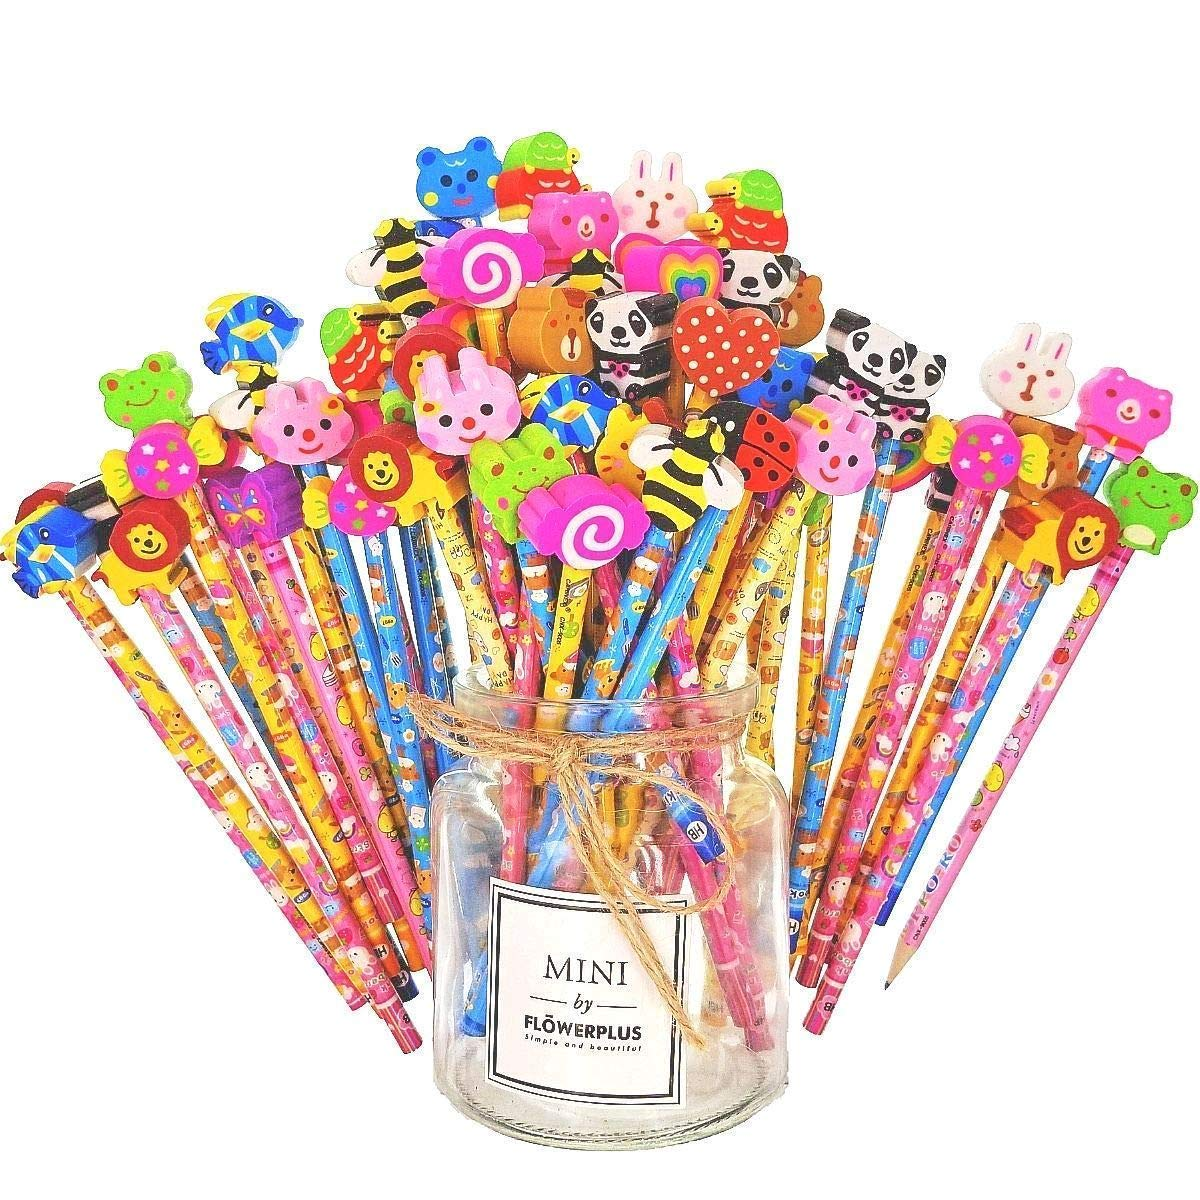 JZK 50 x Wooden Graphite Pencils Set with Cartoon Rubber erasers for Kids Children Party Favours give Away Thank You Gift Party Bag Filler Birthday for Boys Girls by JZK